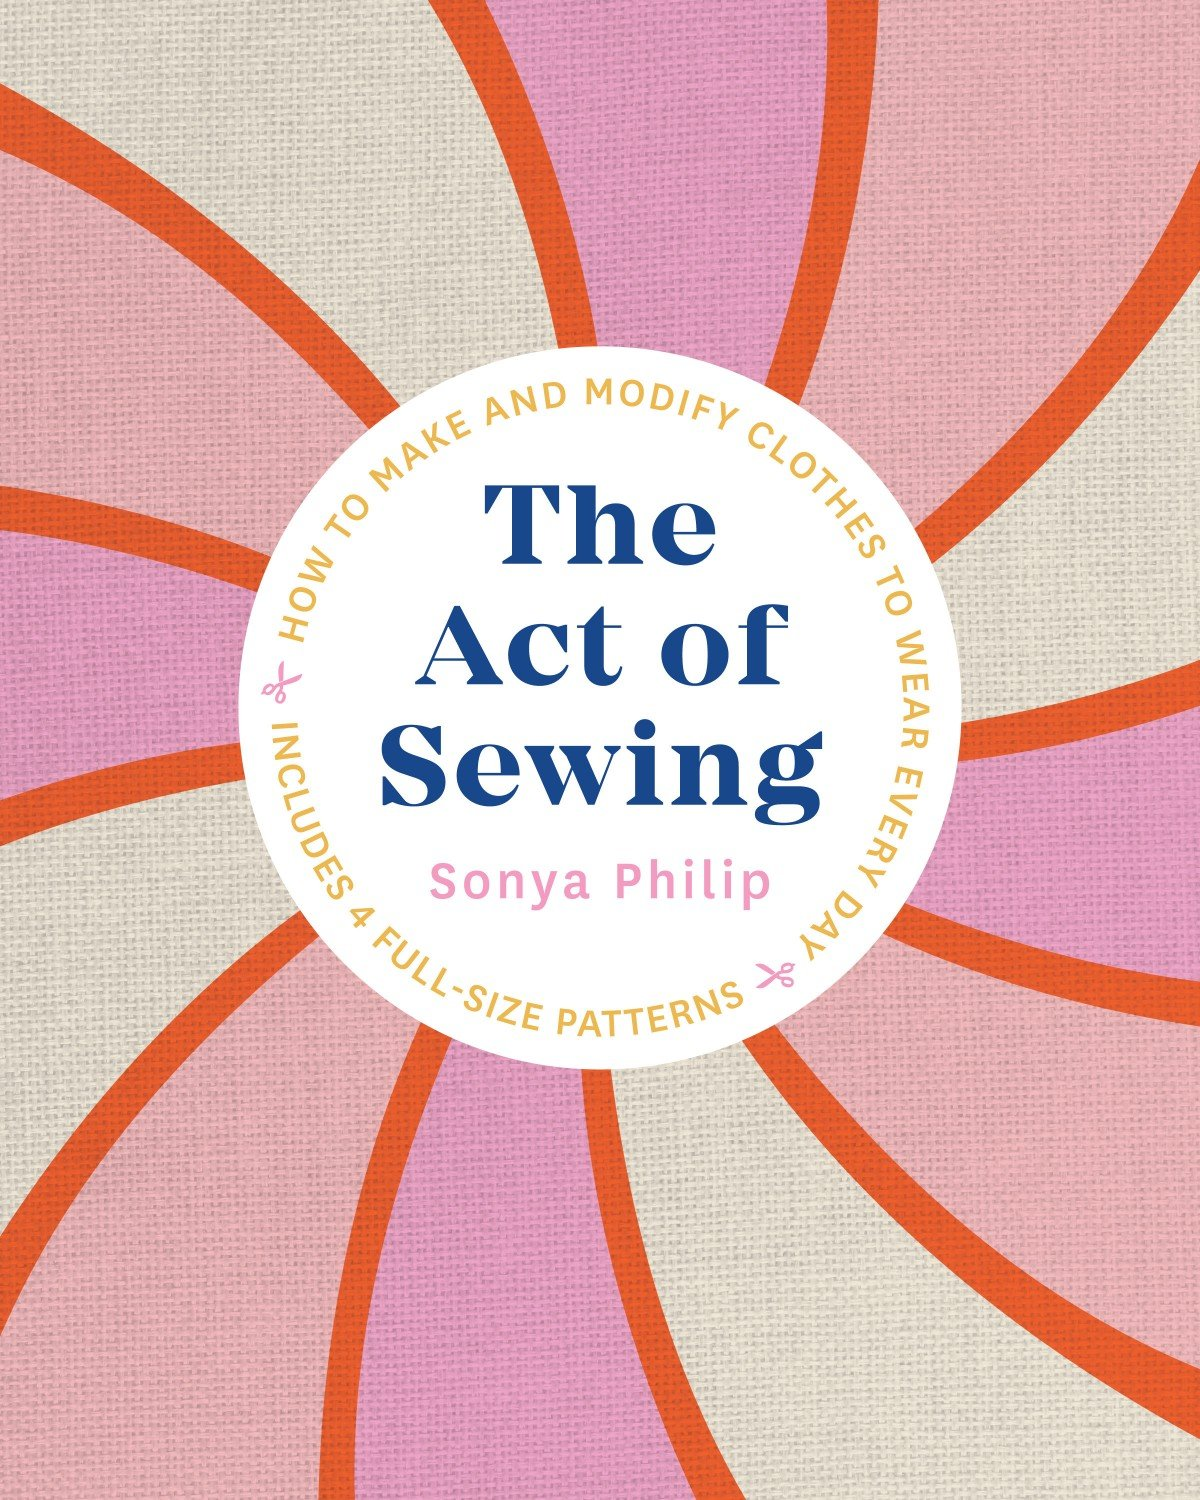 Act of Sewing - Sonya Philip